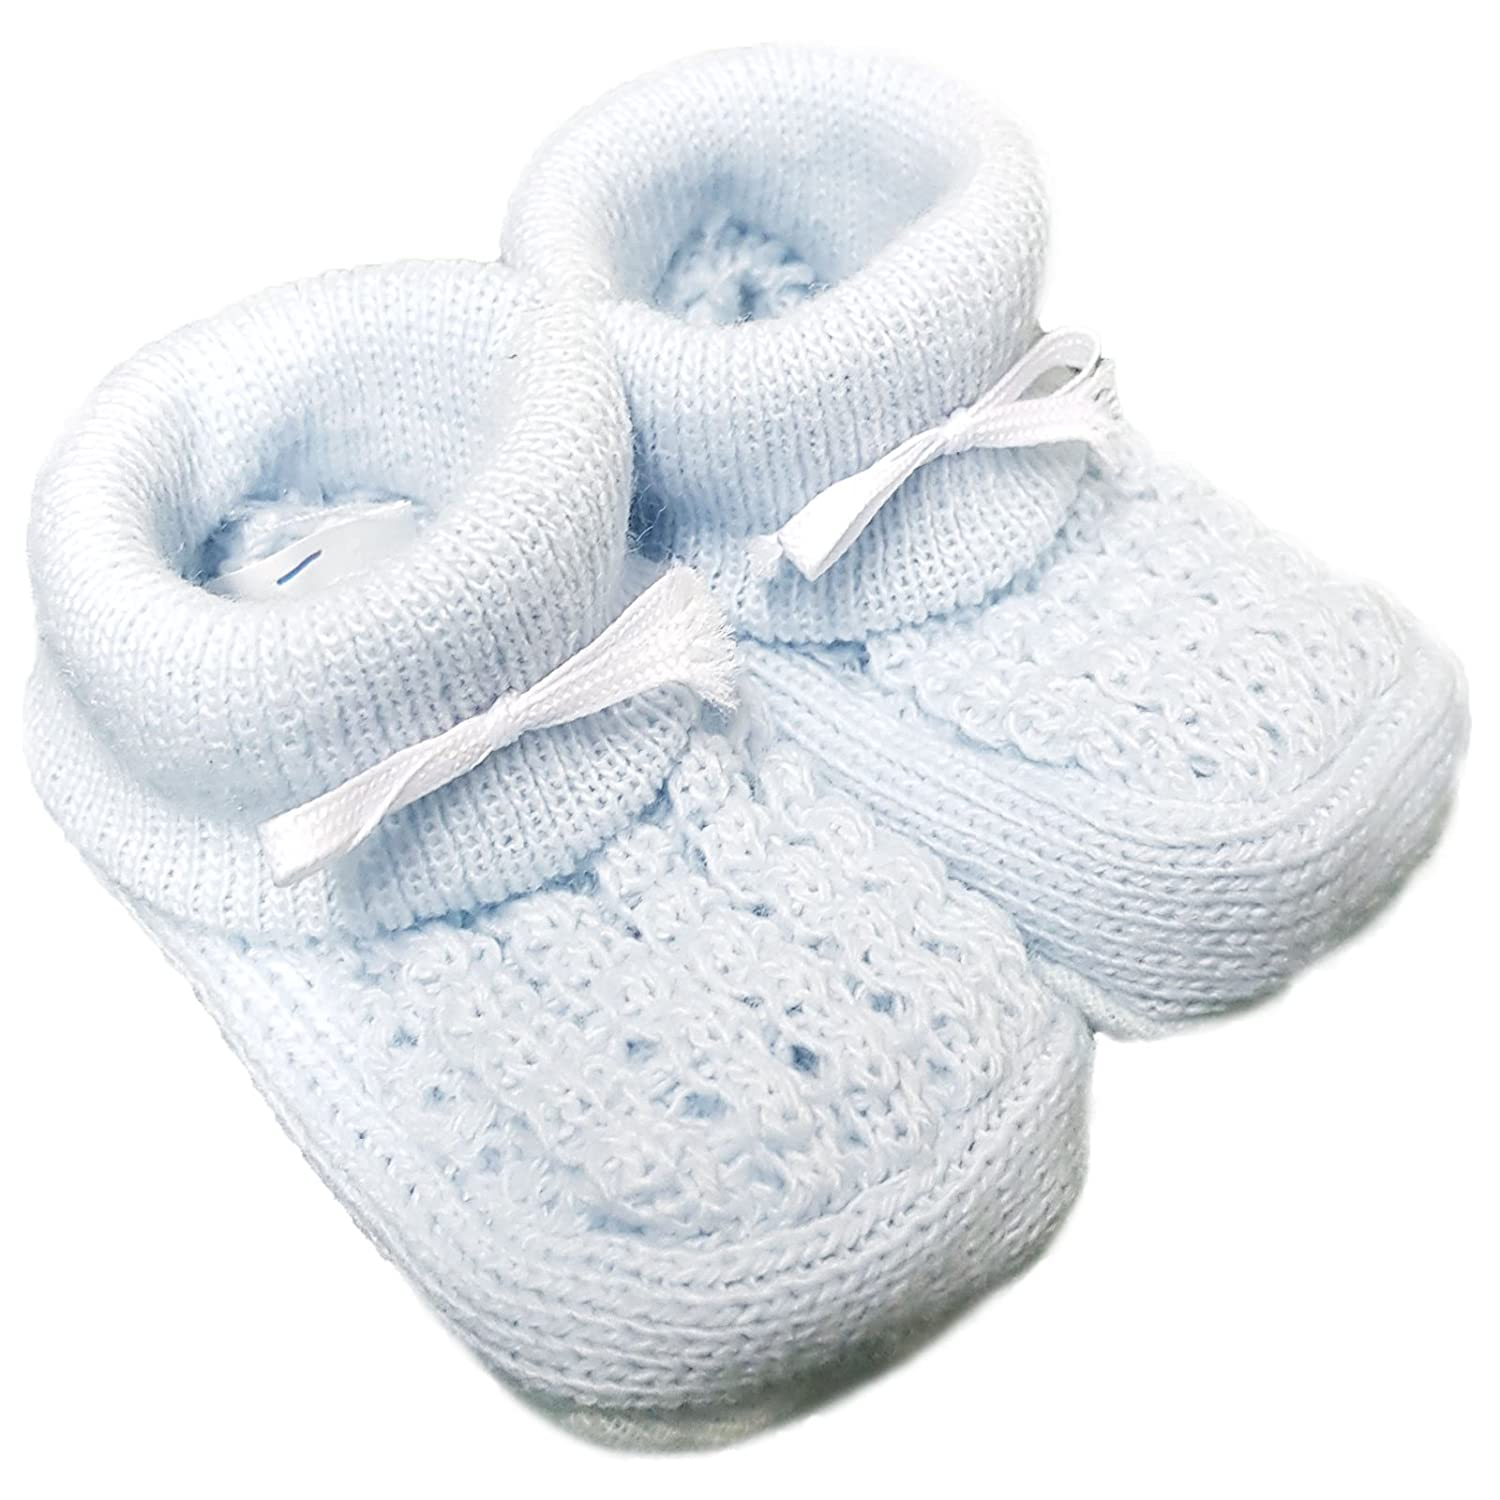 angelkids Baby Boys Girls 1 Pair Turnover Baby Booties Soft Knitted Booties New Born to 3 Months Approx 1045